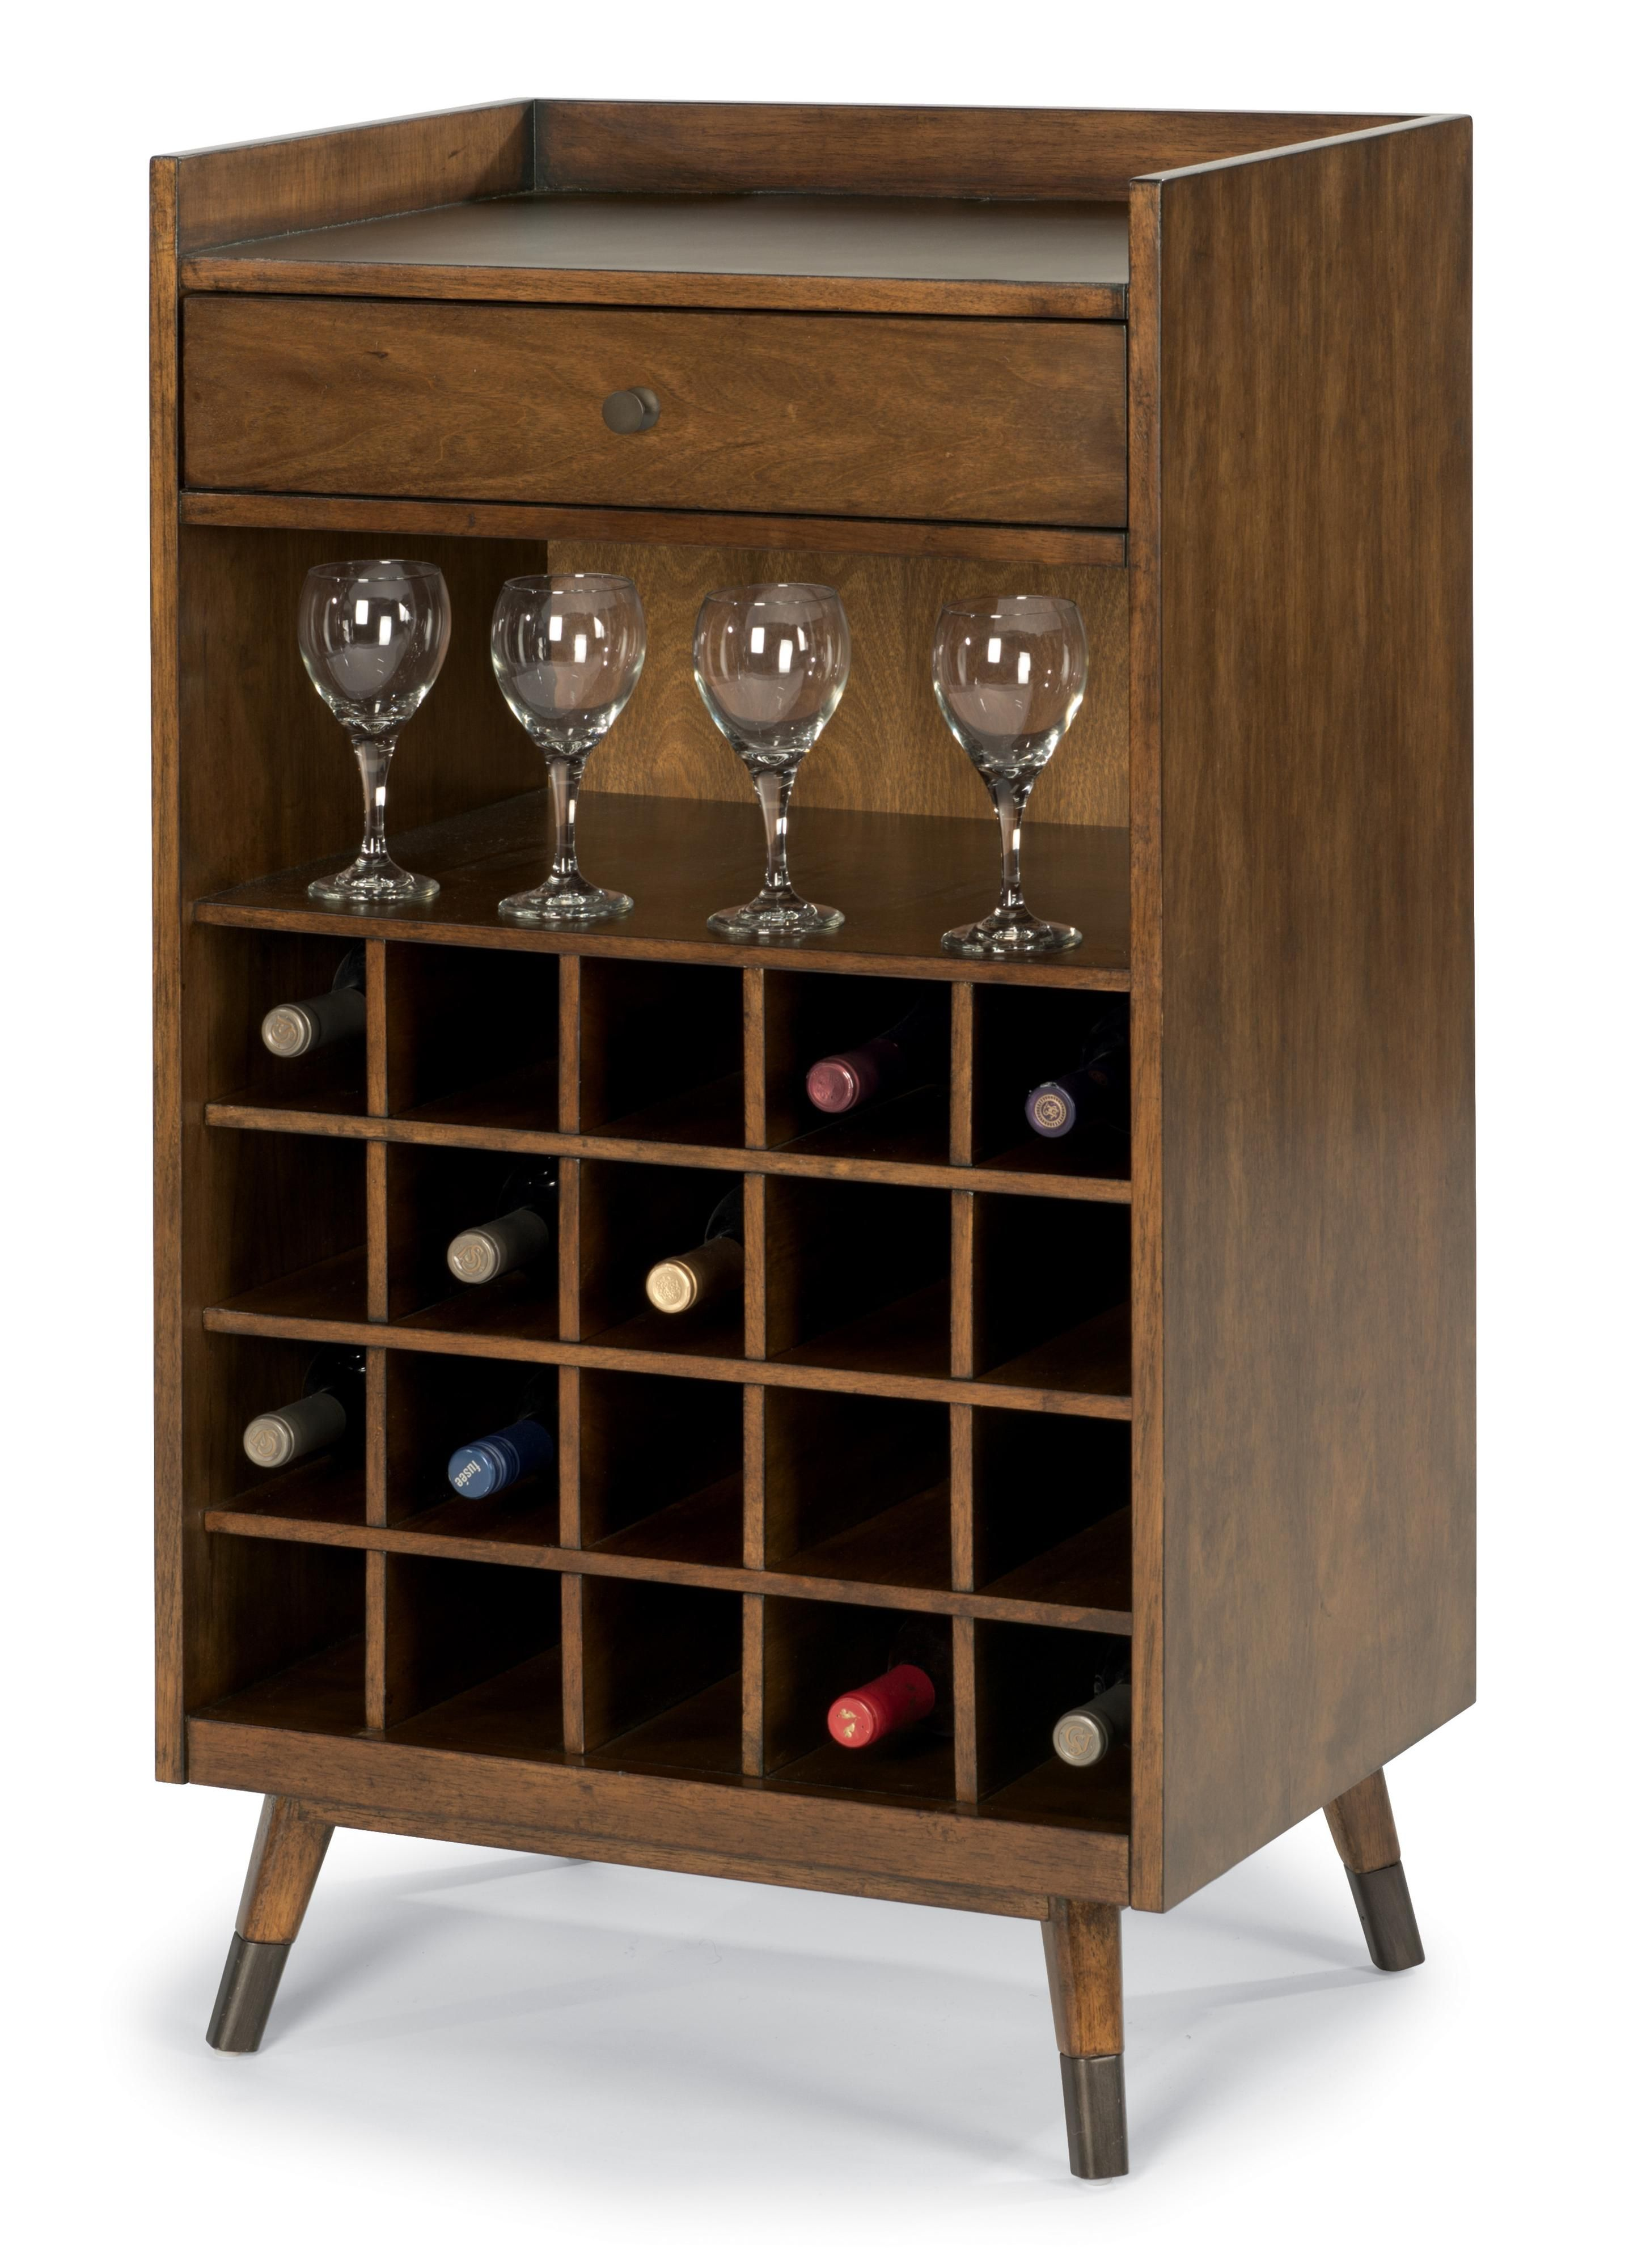 Gemini Mid Century Modern Wine Rack With Bar Accessory Drawer